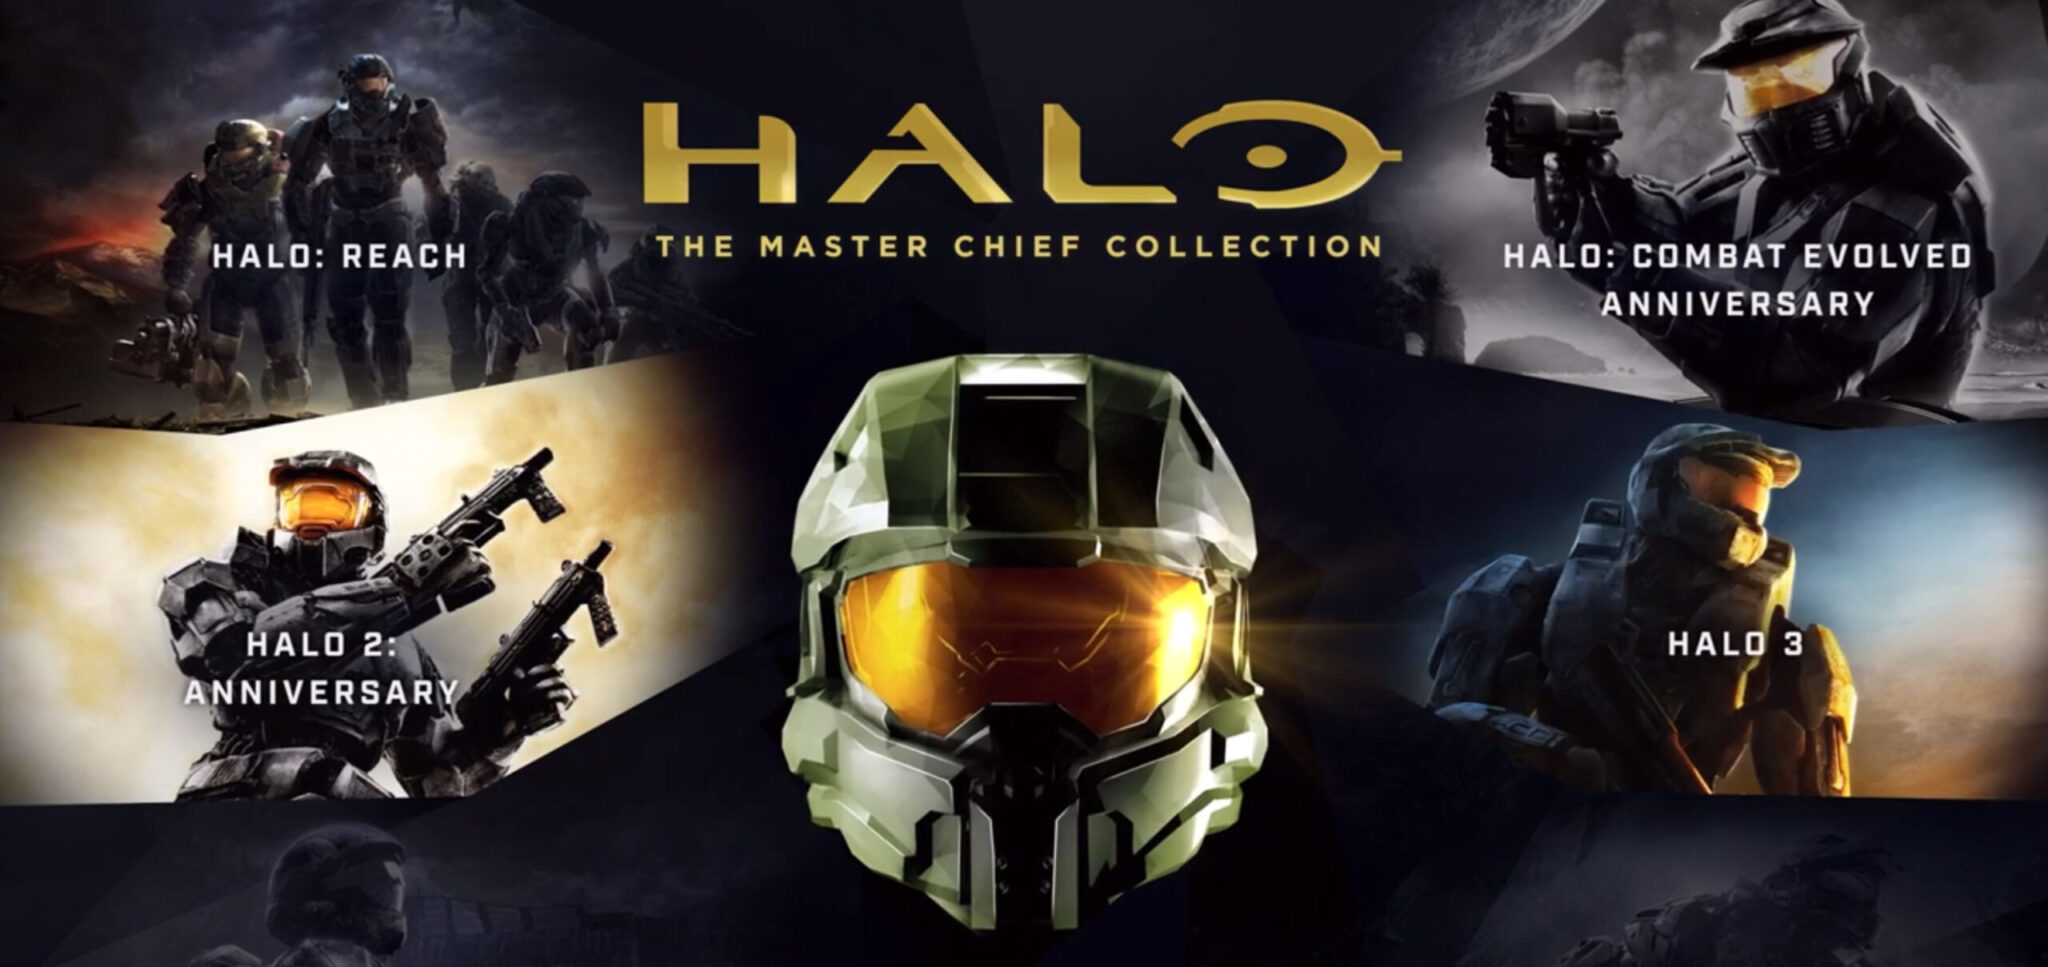 Halo-The-Master-Chief-Collection-Halo-3-scaled-1-e1605342700587